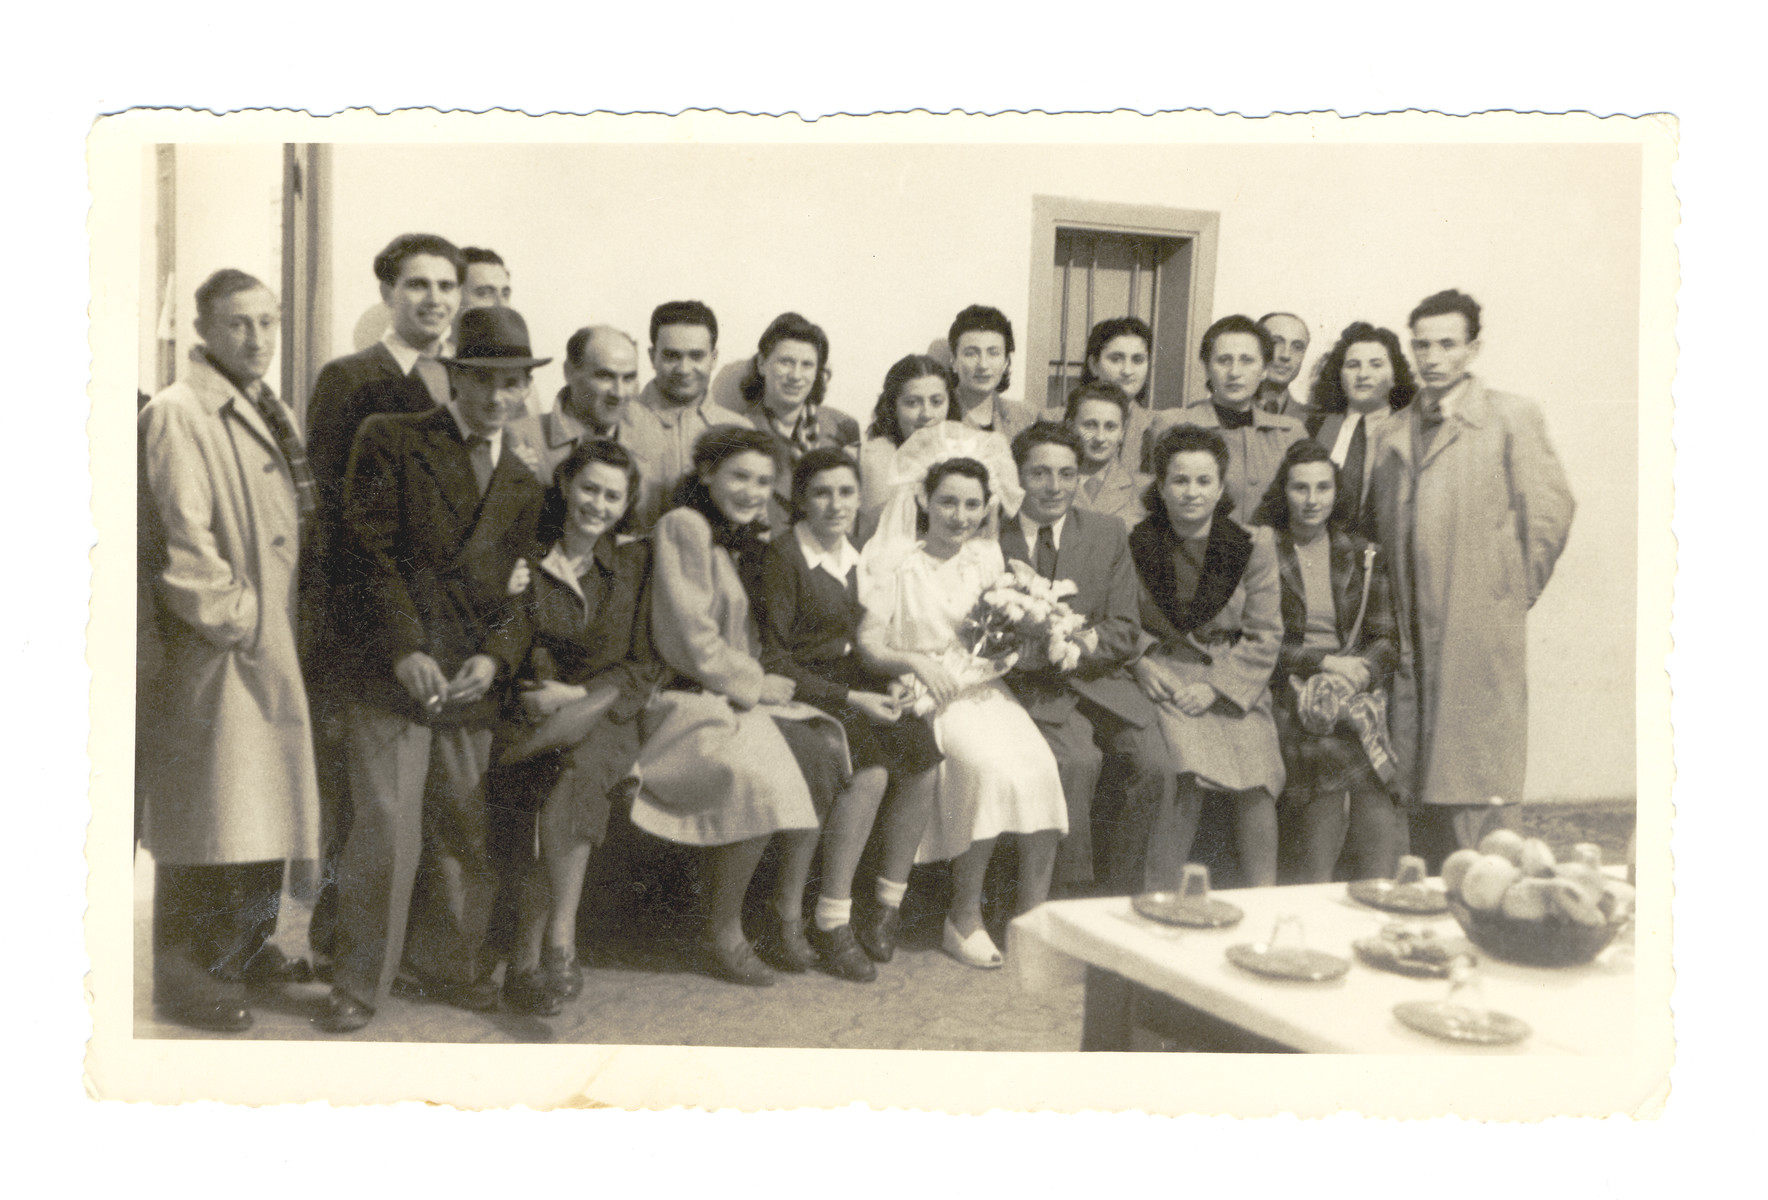 A recent immigrant couple poses on their wedding day surrounded by friends from an Italian displaced persons' camp and the illegal immigration ship, the Wingate.  Almost immediately after the wedding, the groom left to fight with the Haganna in the battles preceding the War of Independence.  Pictured in the center or Josef Fischer and his bride, Miraim Domawaska Fischer.  Next to Miriam is her sister Rivke Domawaska.  Next to Josef is Malka Yevelewicz who survived as a partisan.